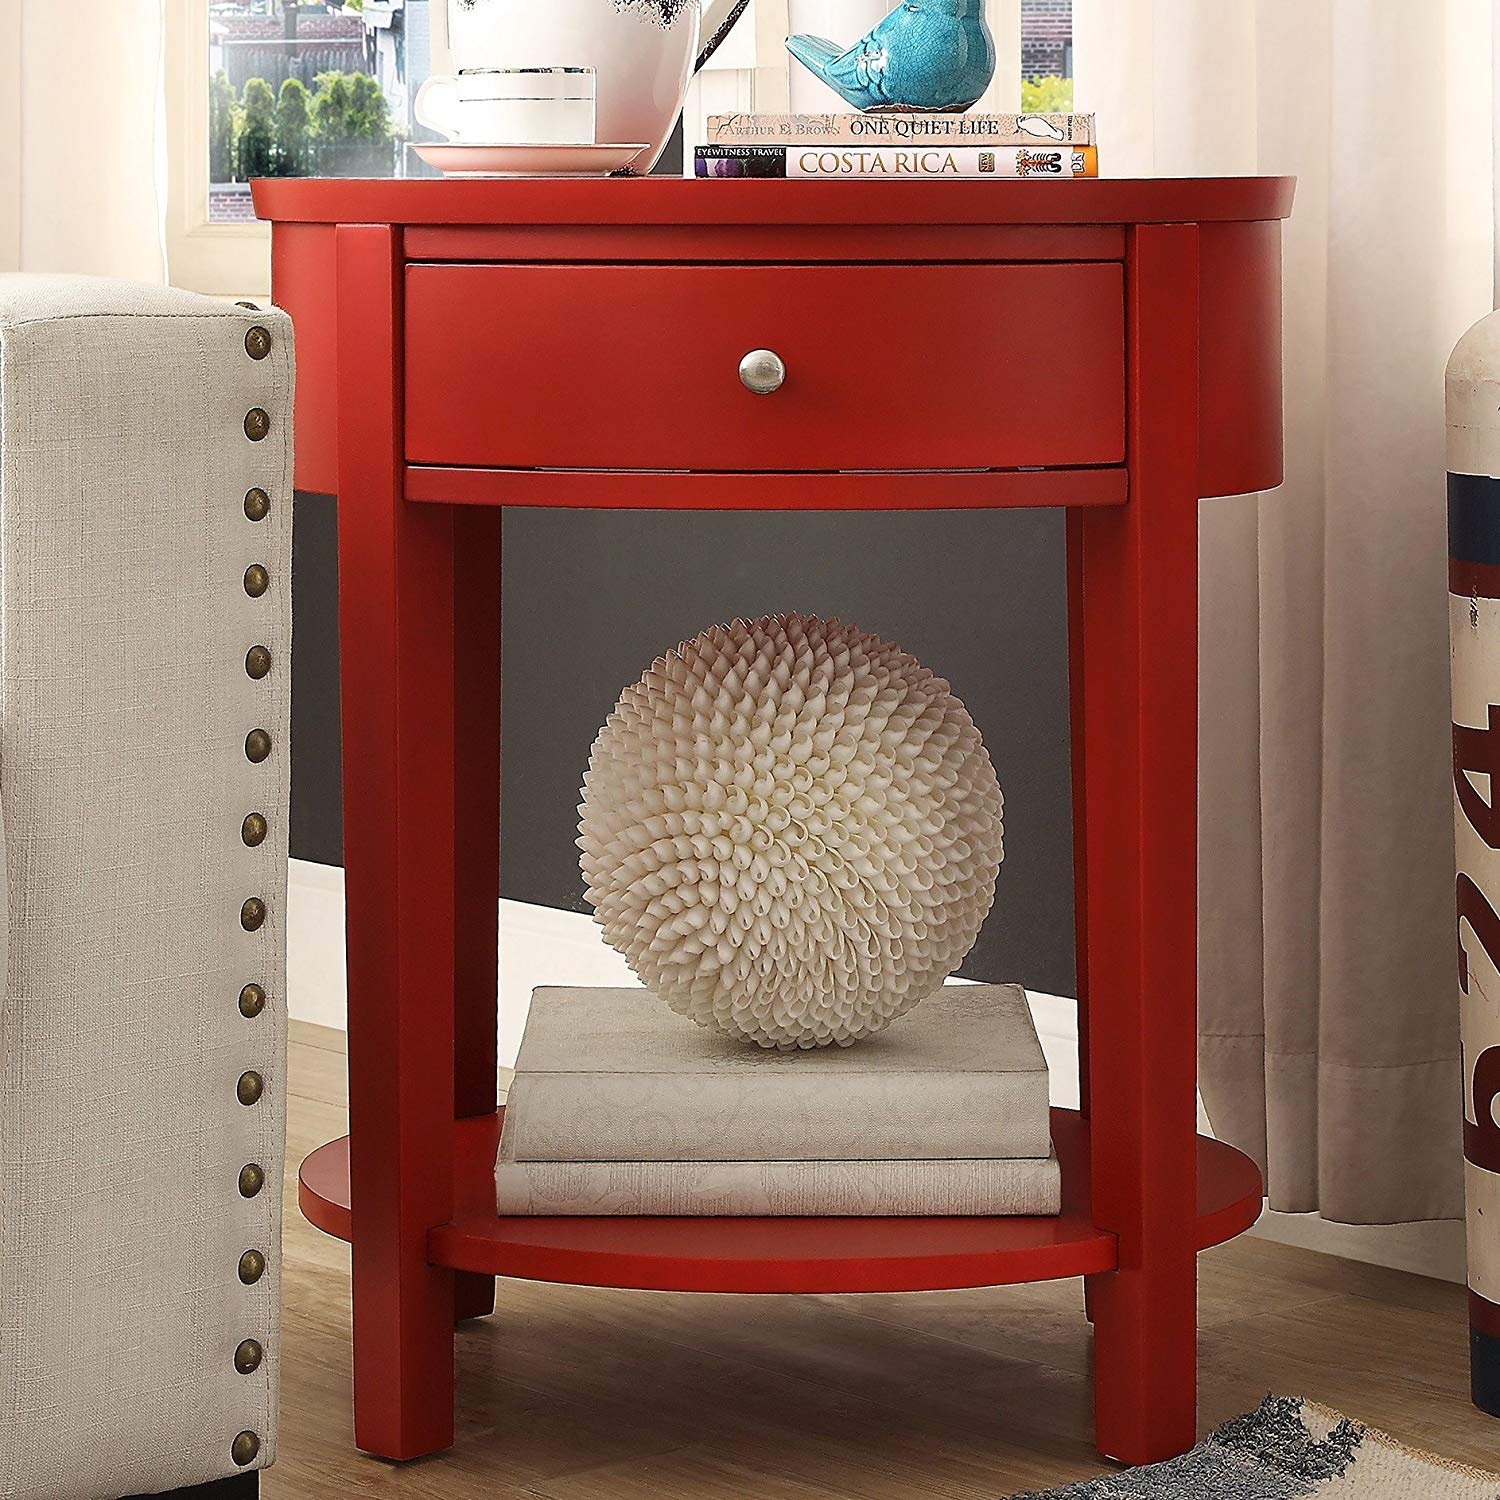 casual fillmore drawer oval wood shelf french dovetail fillmorered accent table red dining with bench seats round lamp tables for living room half moon glass ikea patio umbrella